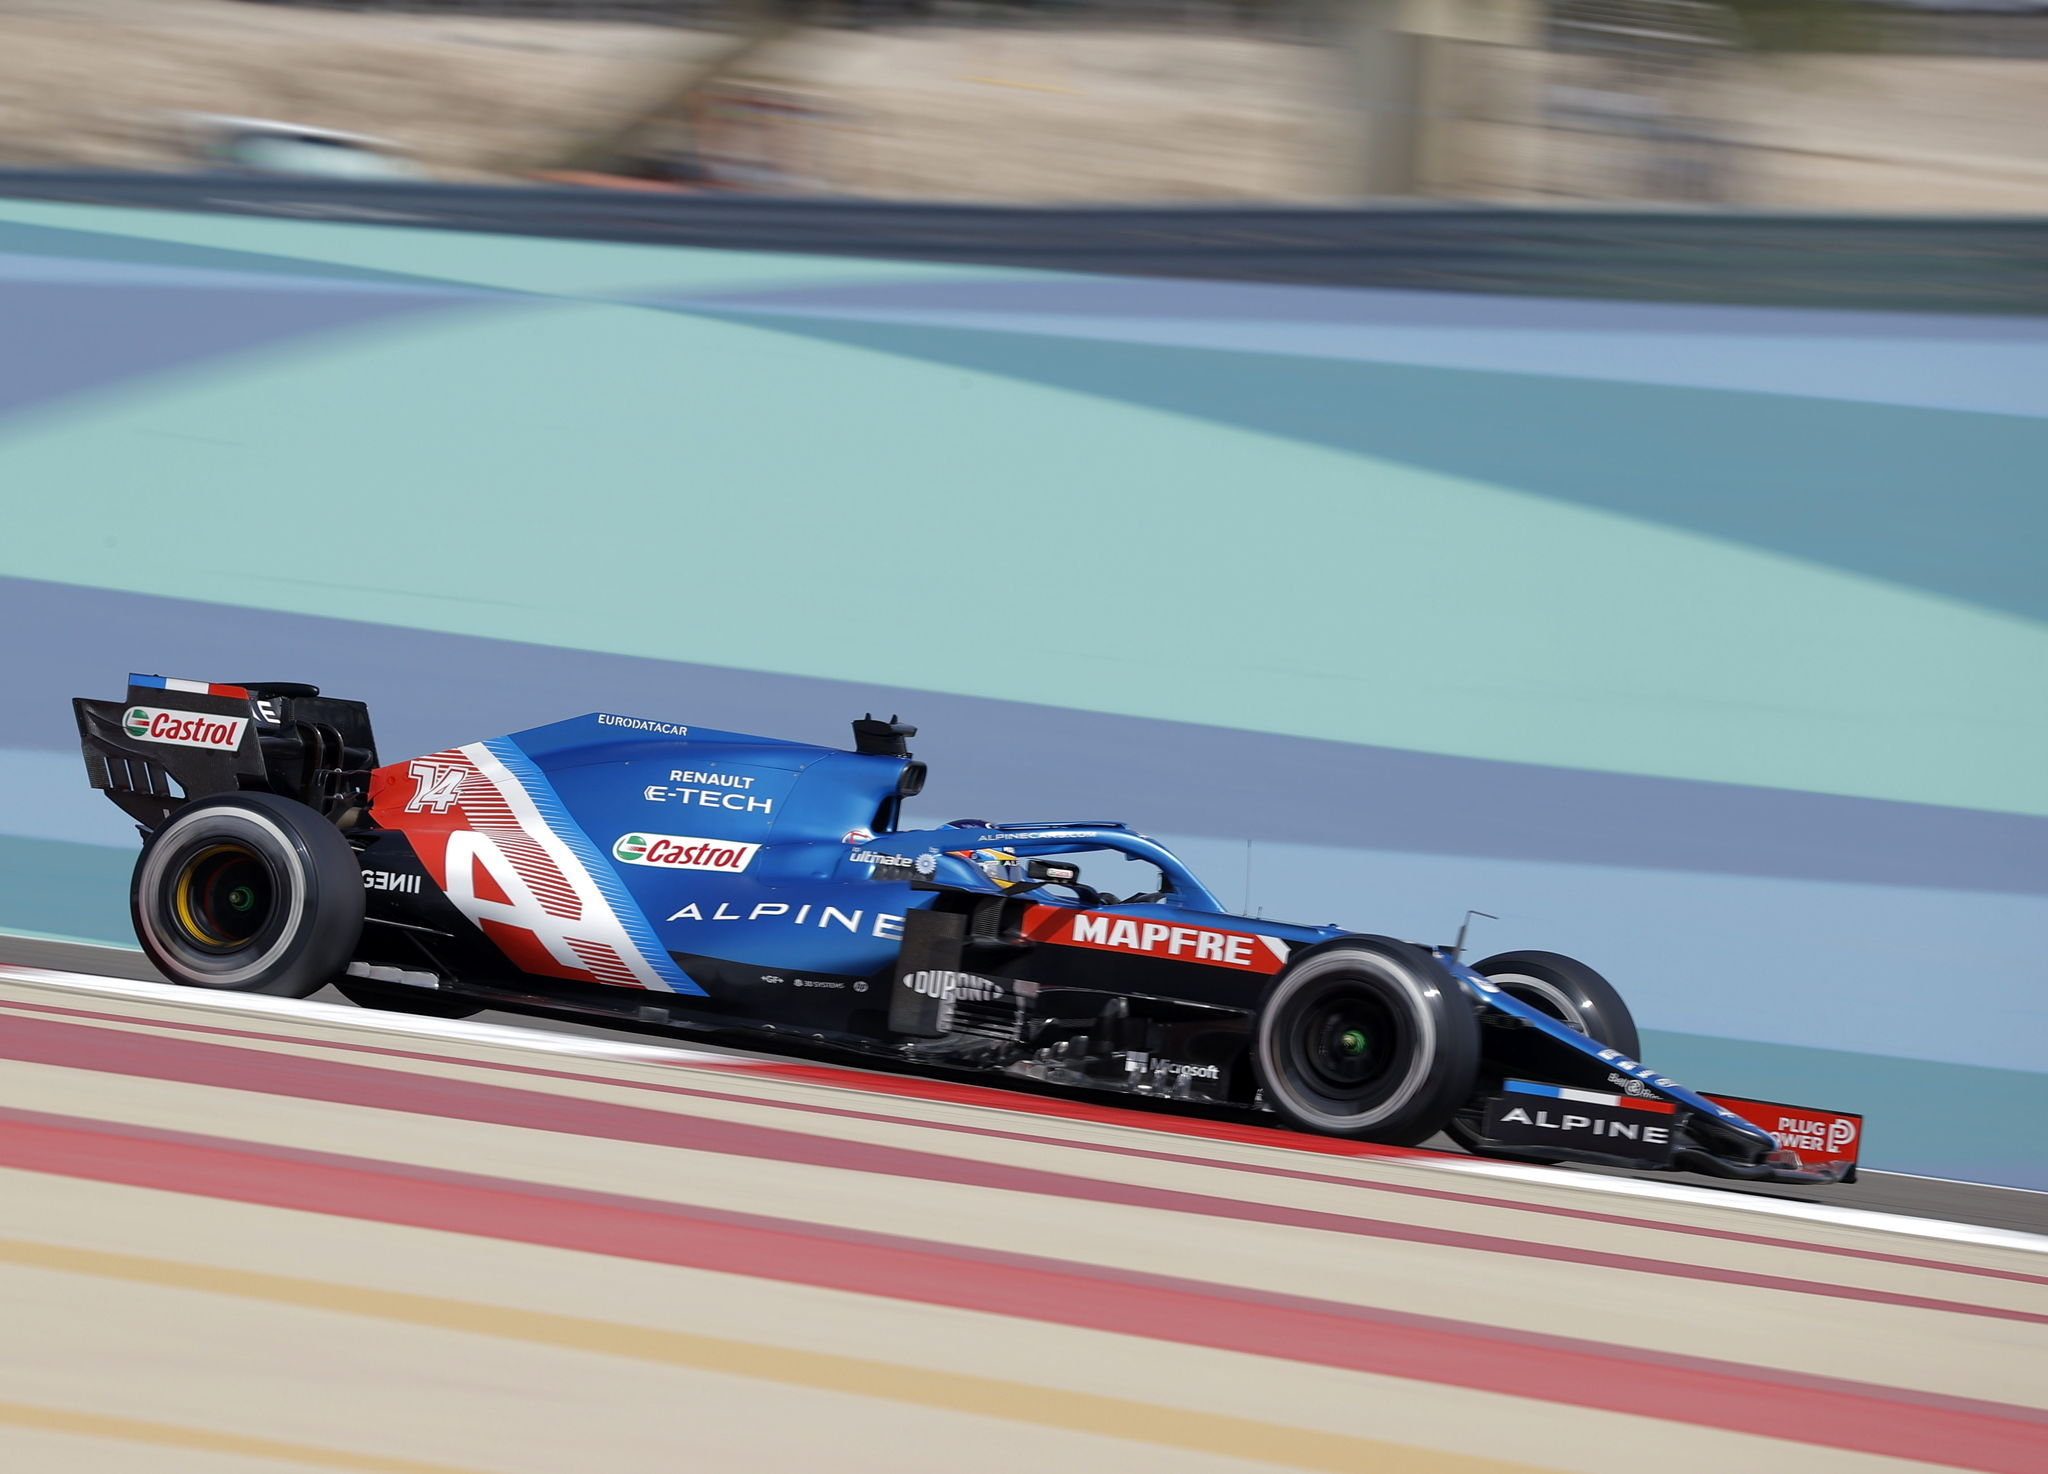 Sakhir (Bahrain), 26/03/2021.- Spanish Formula One driver lt;HIT gt;Fernando lt;/HIT gt; lt;HIT gt;Alonso lt;/HIT gt; of Alpine F1 Team in action during the first practice session of the 2021 Formula One Grand Prix of Bahrain at the Sakhir circuit near Manama, Bahrain, 26 March 2021. The 2021 Bahrain Formula One race will take place on 28 March 2021. (Fórmula Uno, Bahrein) EFE/EPA/VALDRIN XHEMAJ